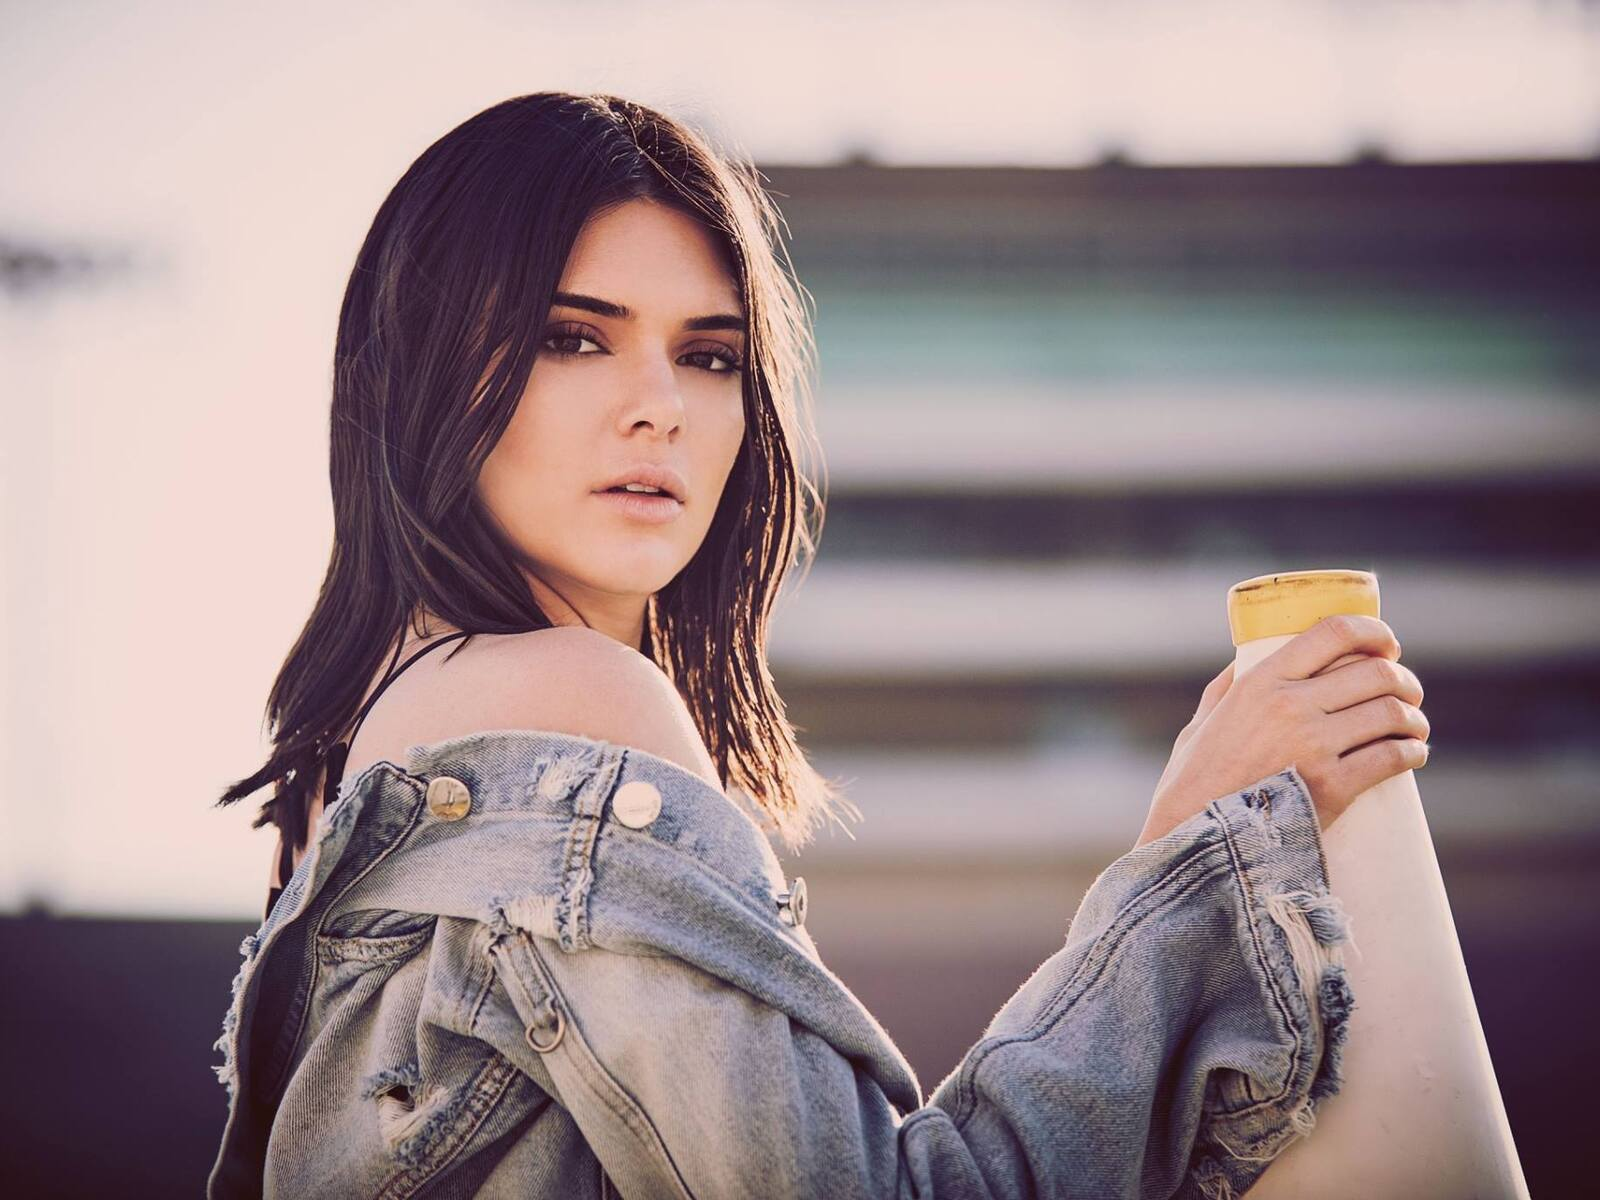 kendall-jenner-bo-summer-2018-photoshoot-pc.jpg